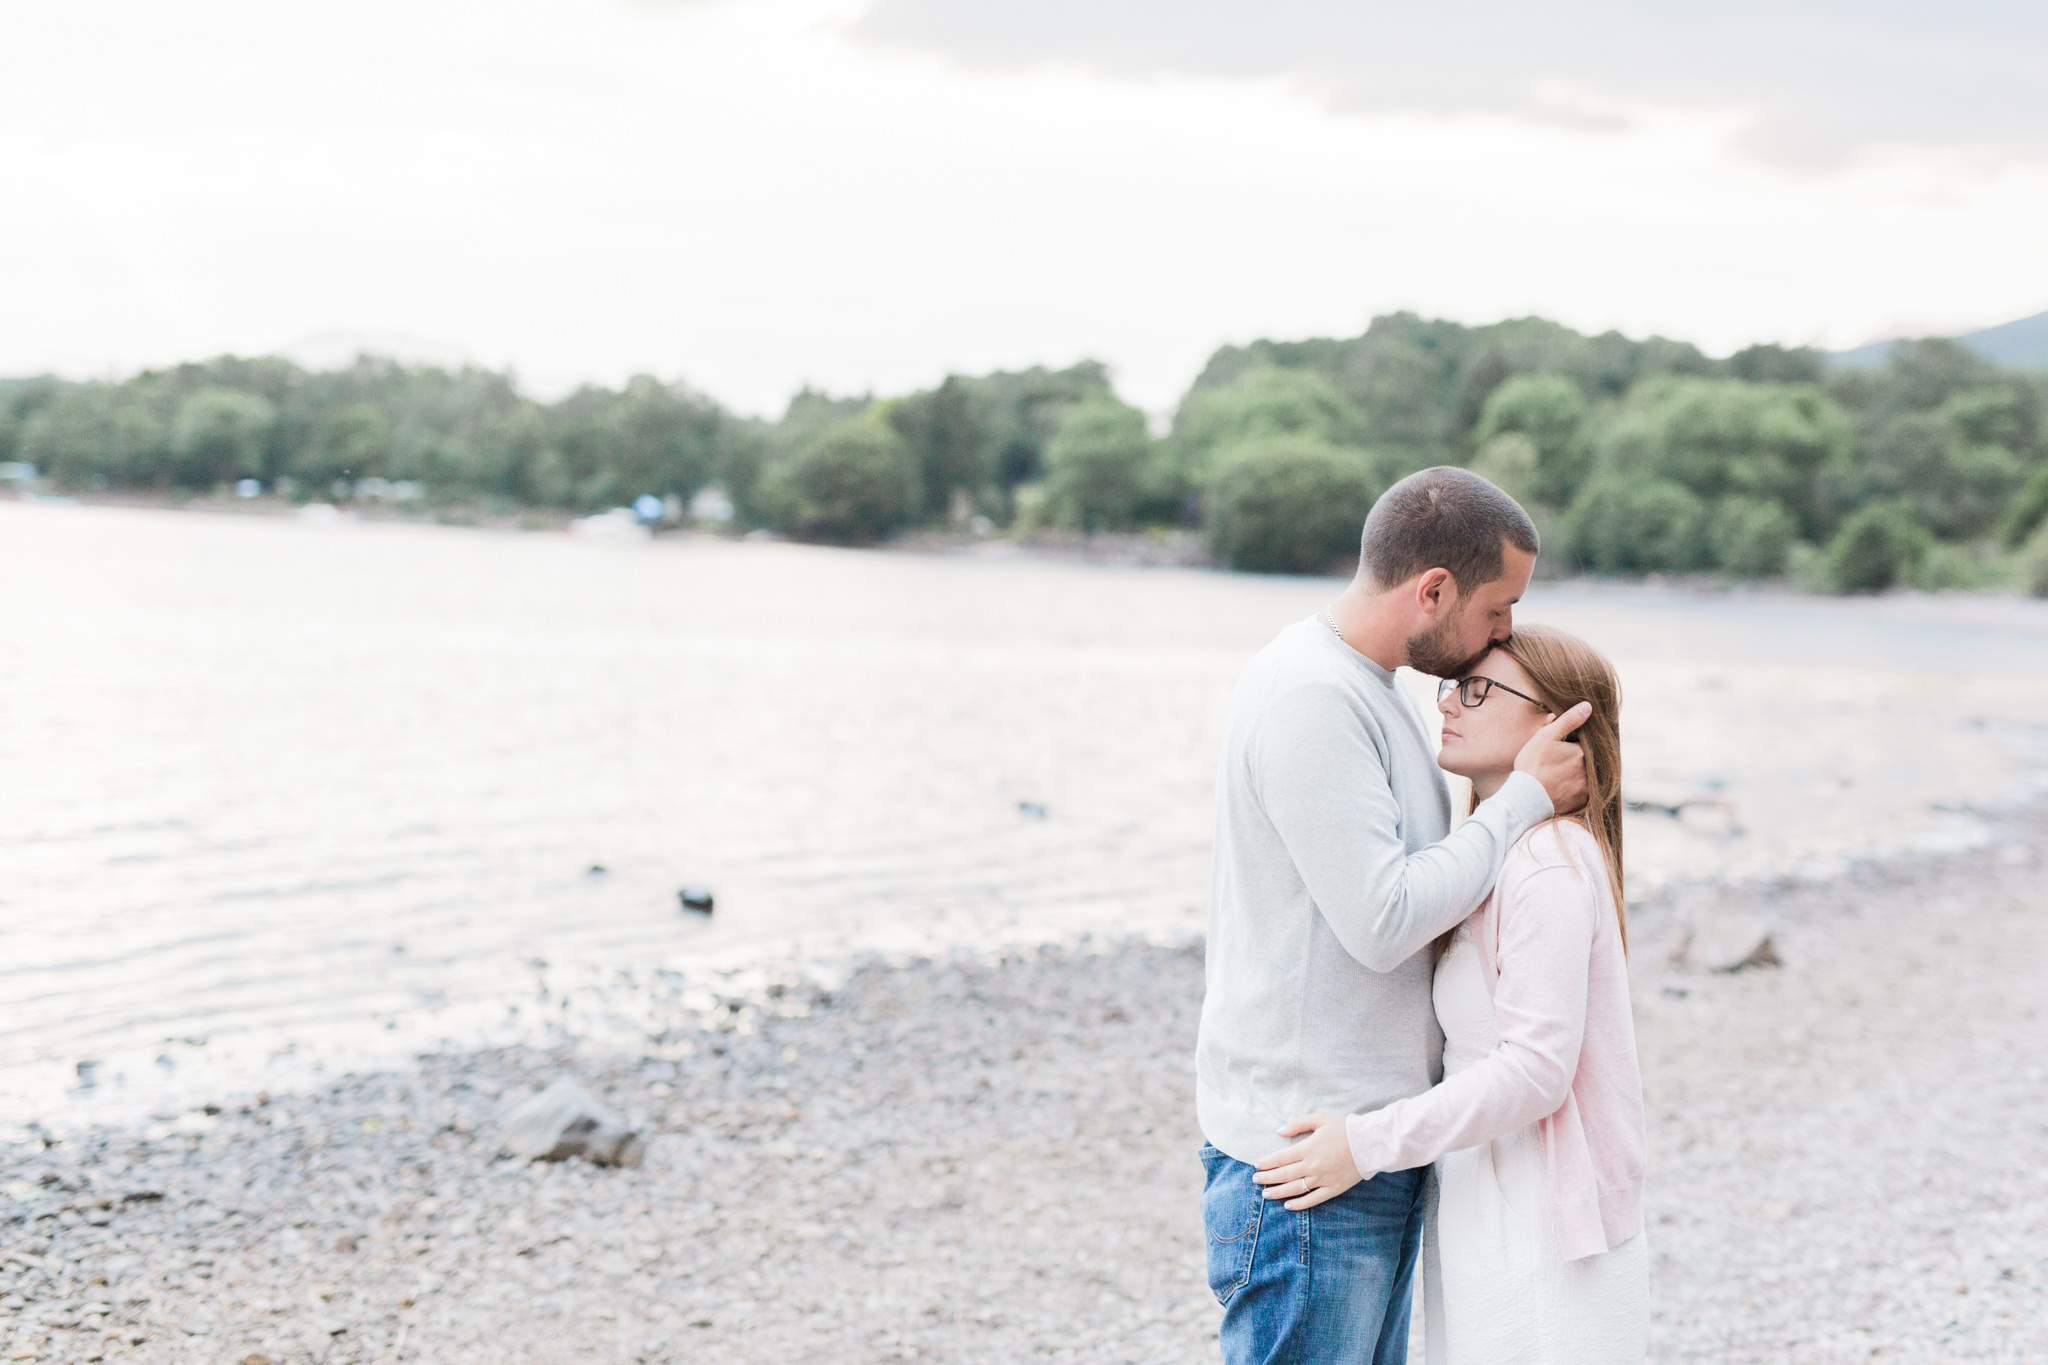 suzanne_li_photography_BALMAHA_LOCHLOMOND_ENGAGEMENT-120.jpg